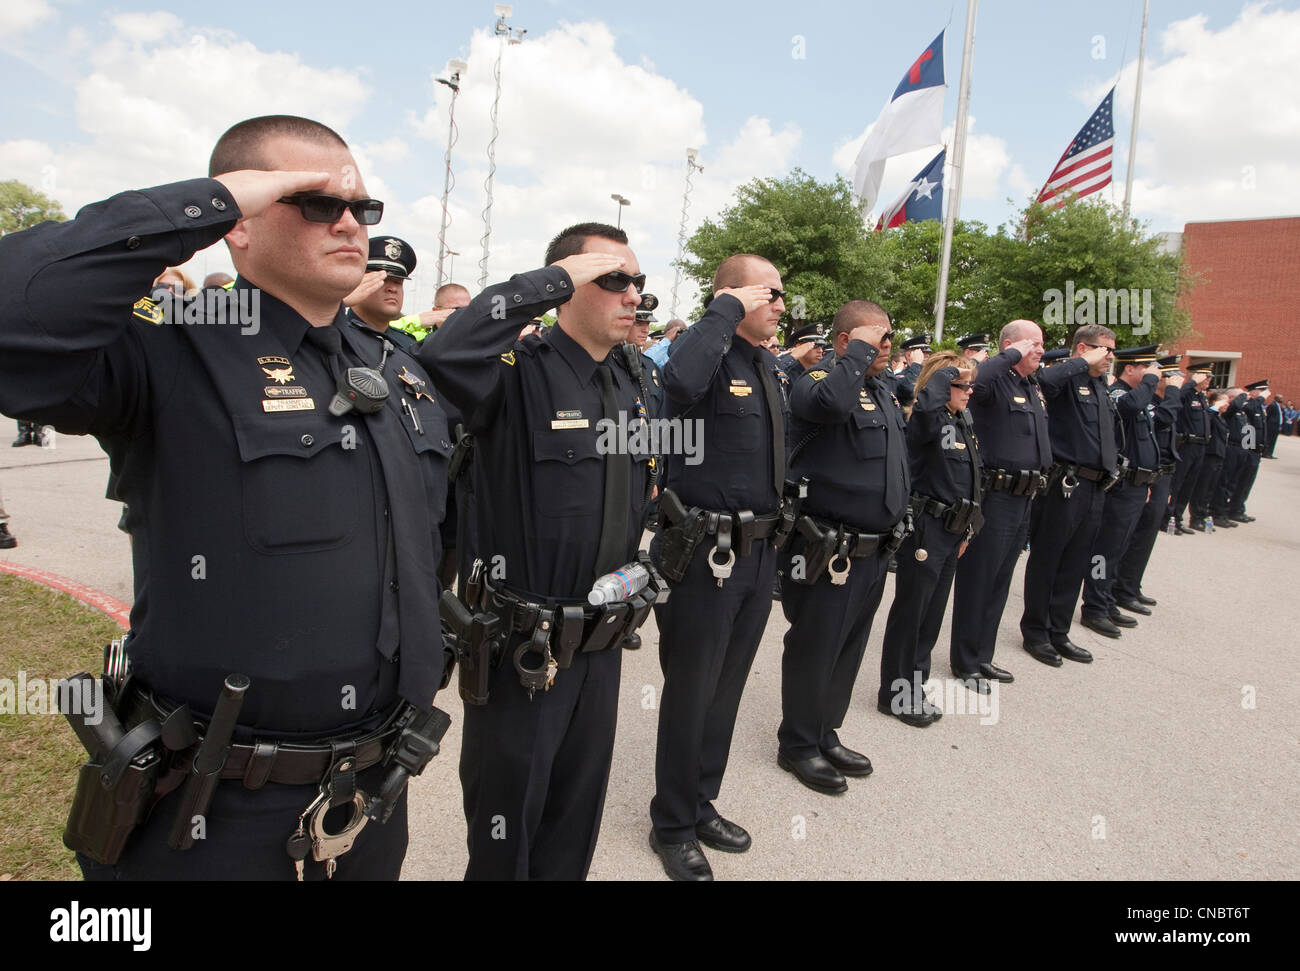 Officers salute during funeral for Austin Police Officer Jaime Padron, who was killed in the line of duty in a full Stock Photo